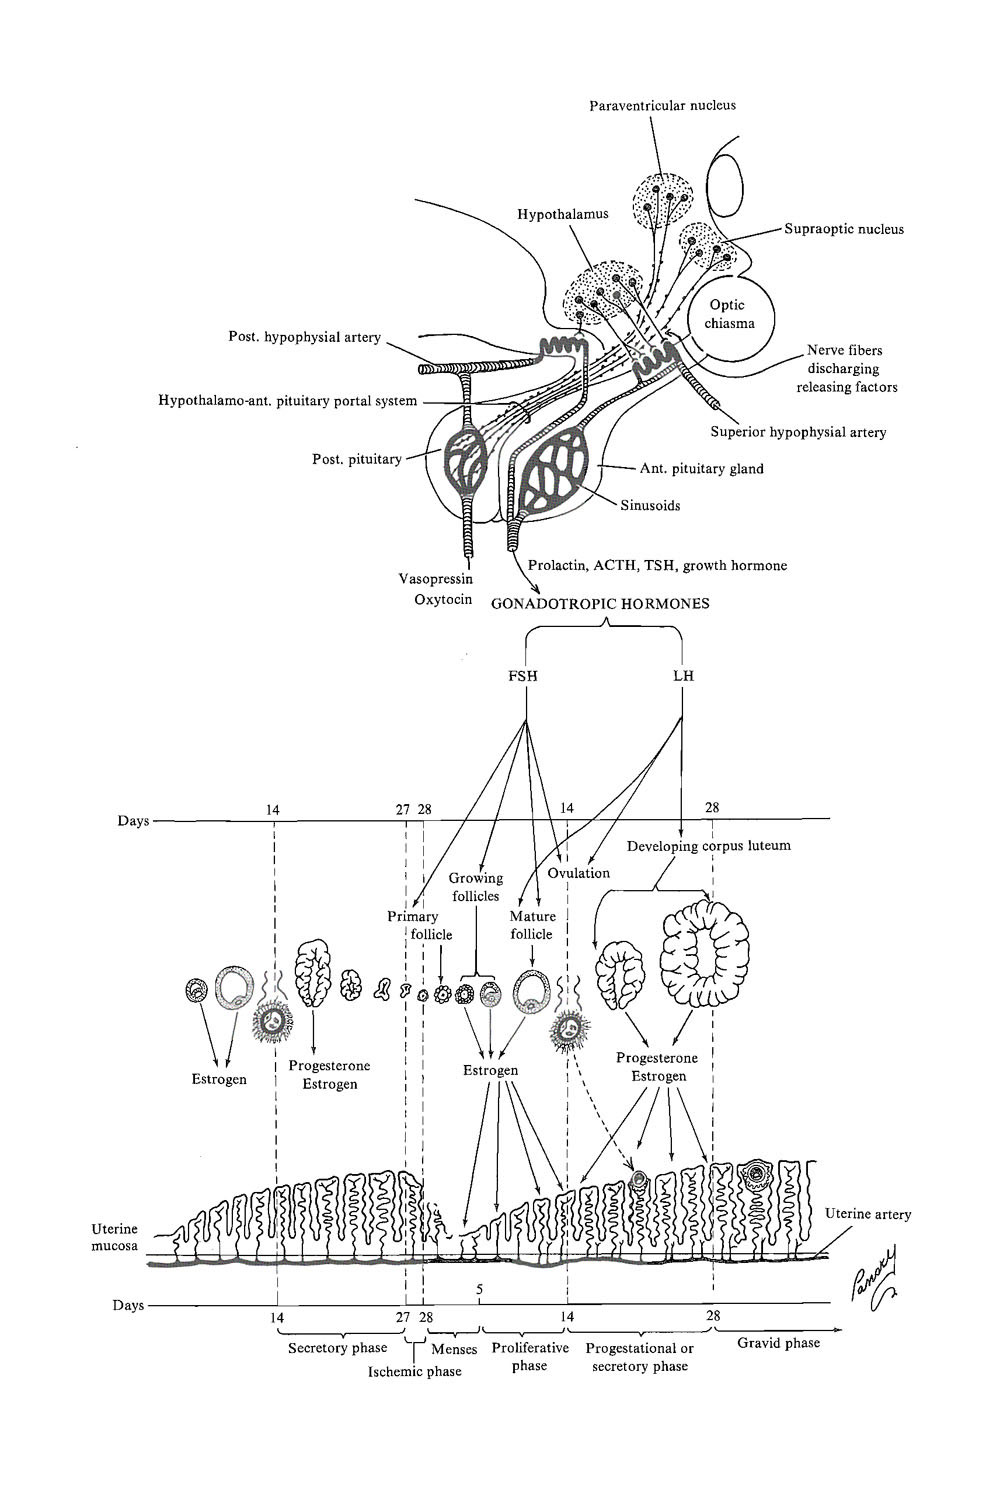 implantation and its preparation: general concepts: image #1